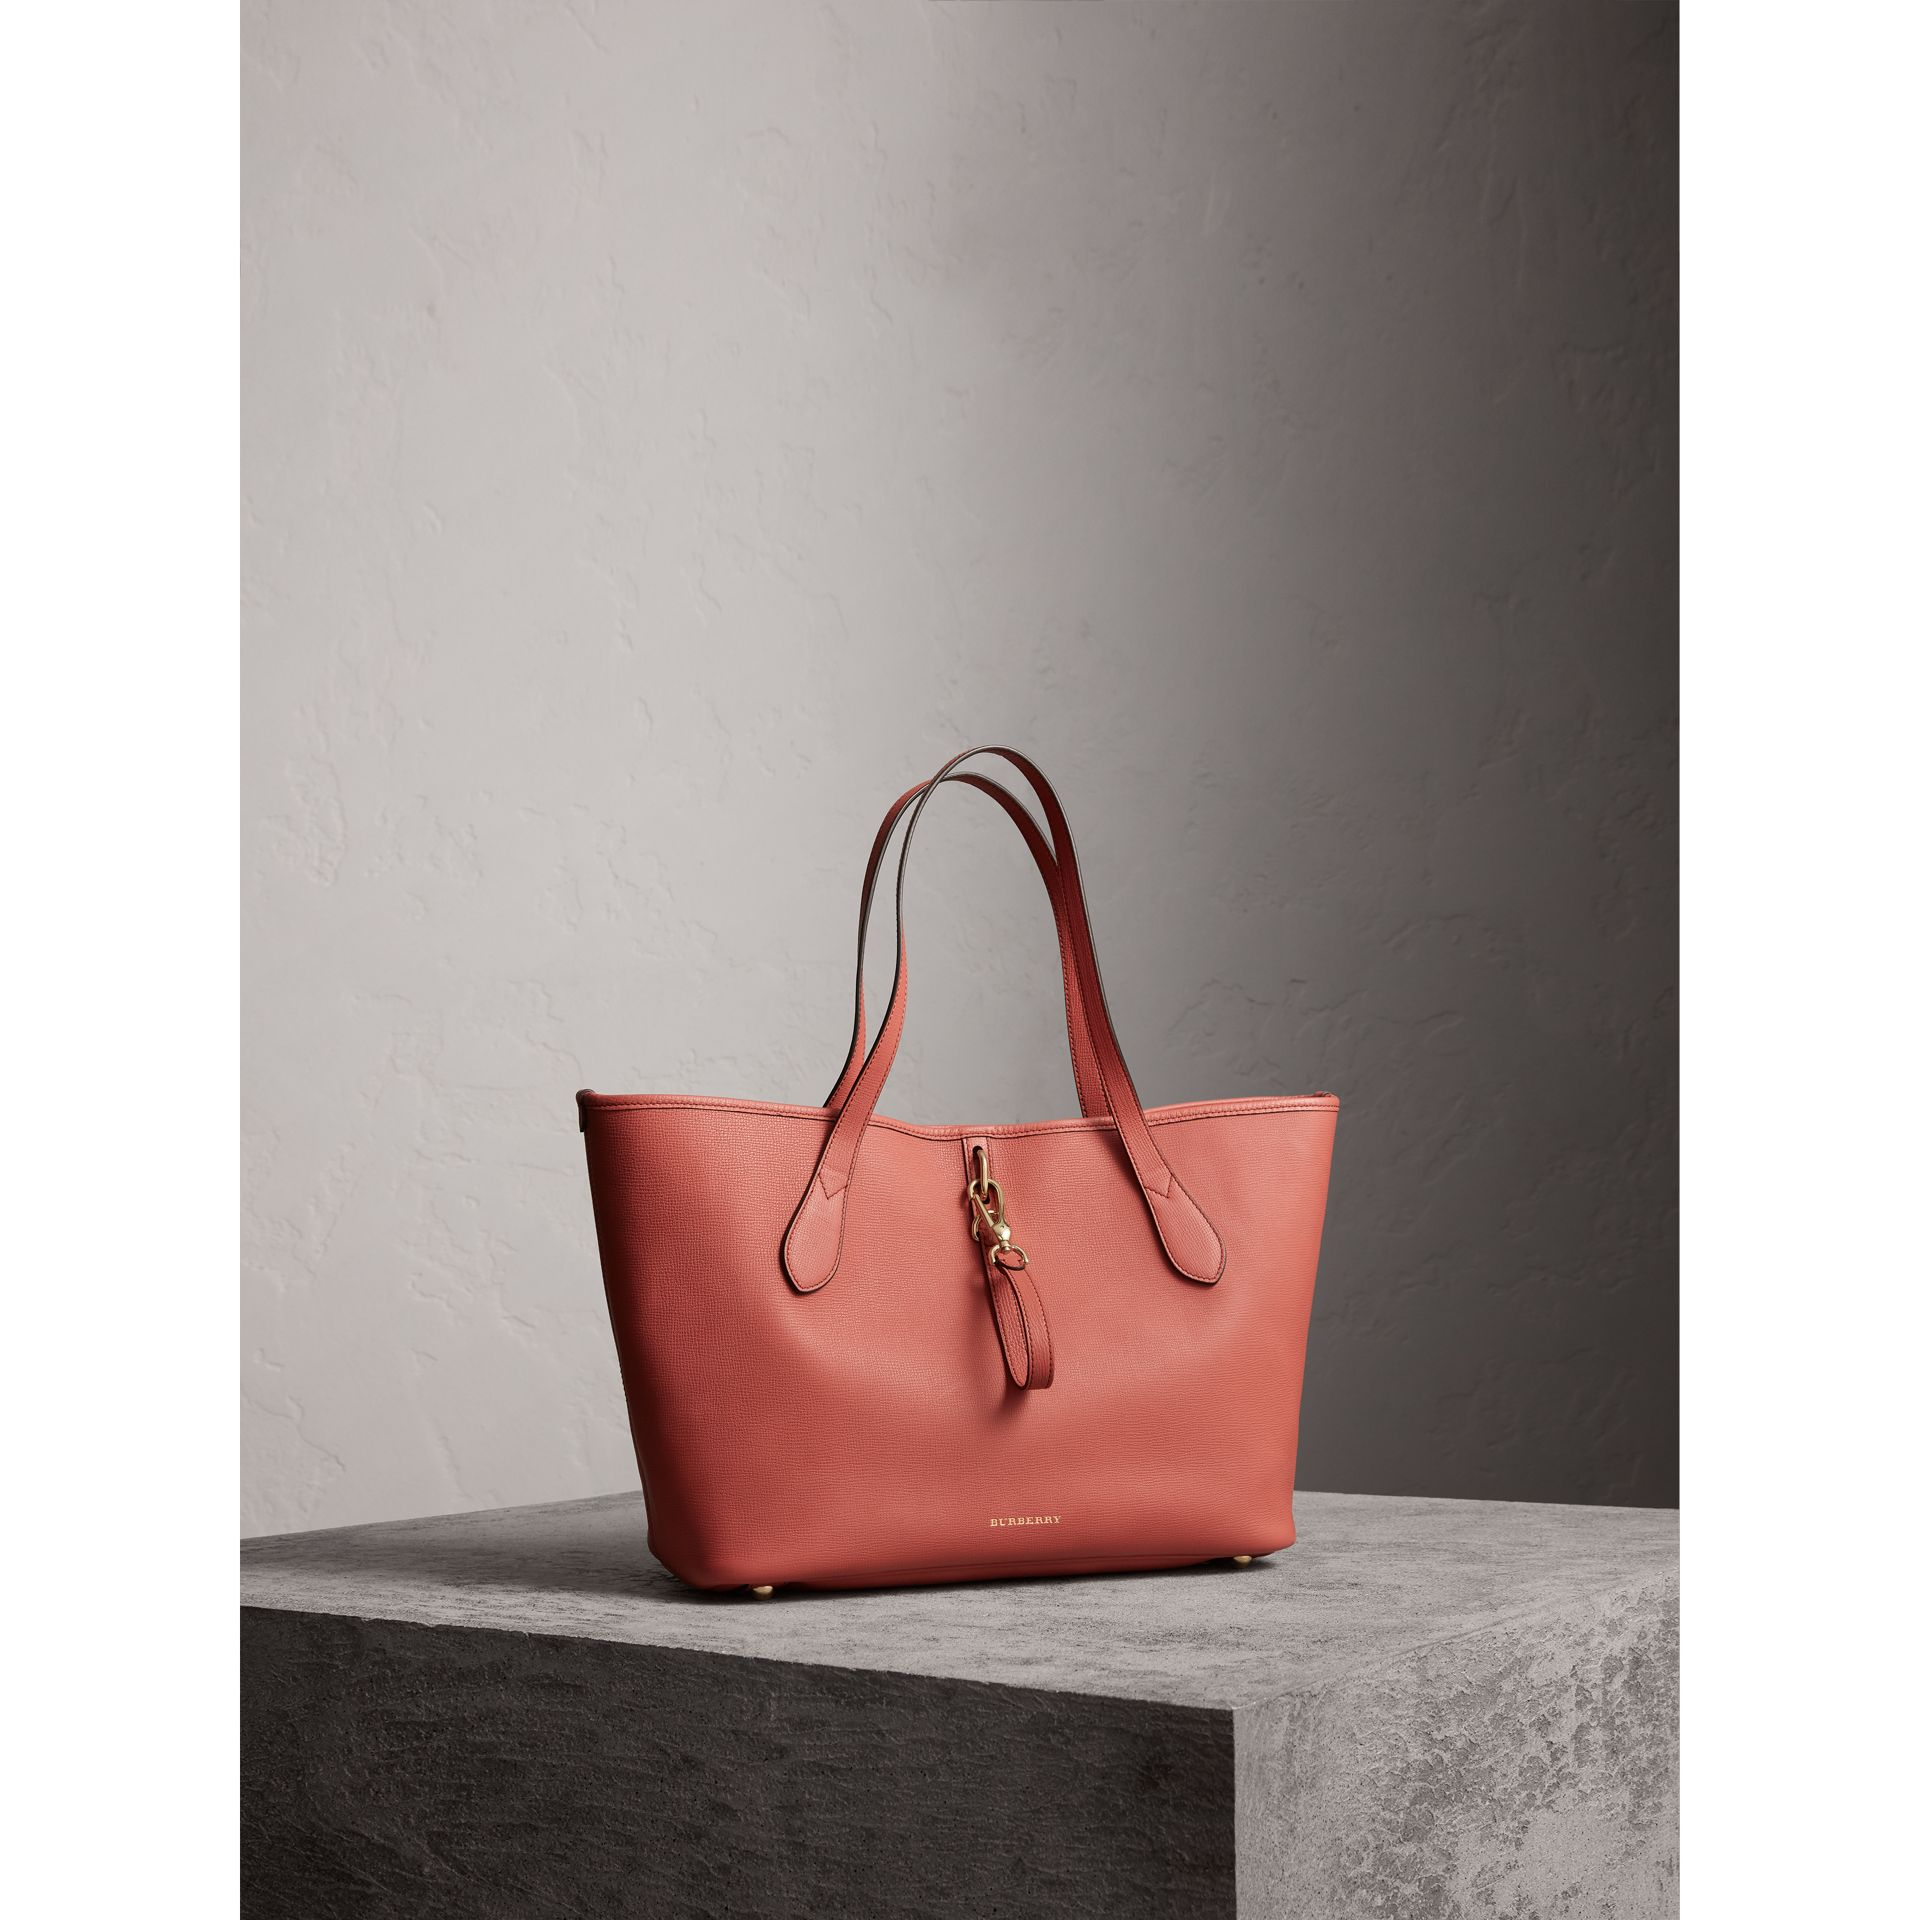 Medium Grainy Leather Tote Bag in Cinnamon Red - Women | Burberry - gallery image 1